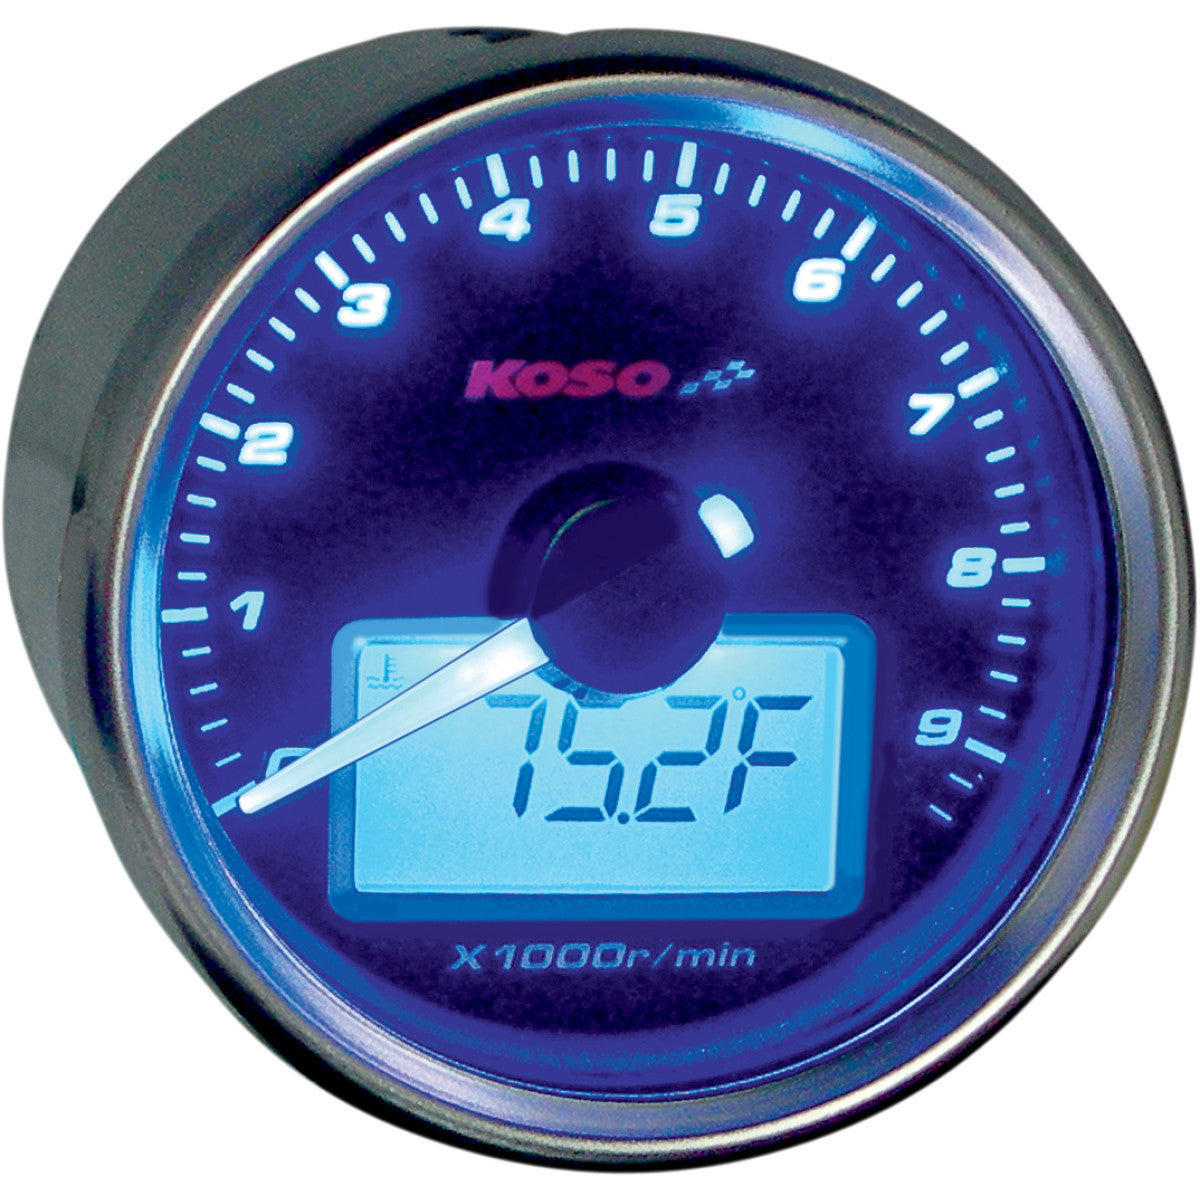 2211-0090 KOSO NORTH AMERICA GP-Style Universal tachometer With Temperature Gauge TACH-TEMP GAUGE BK FACE